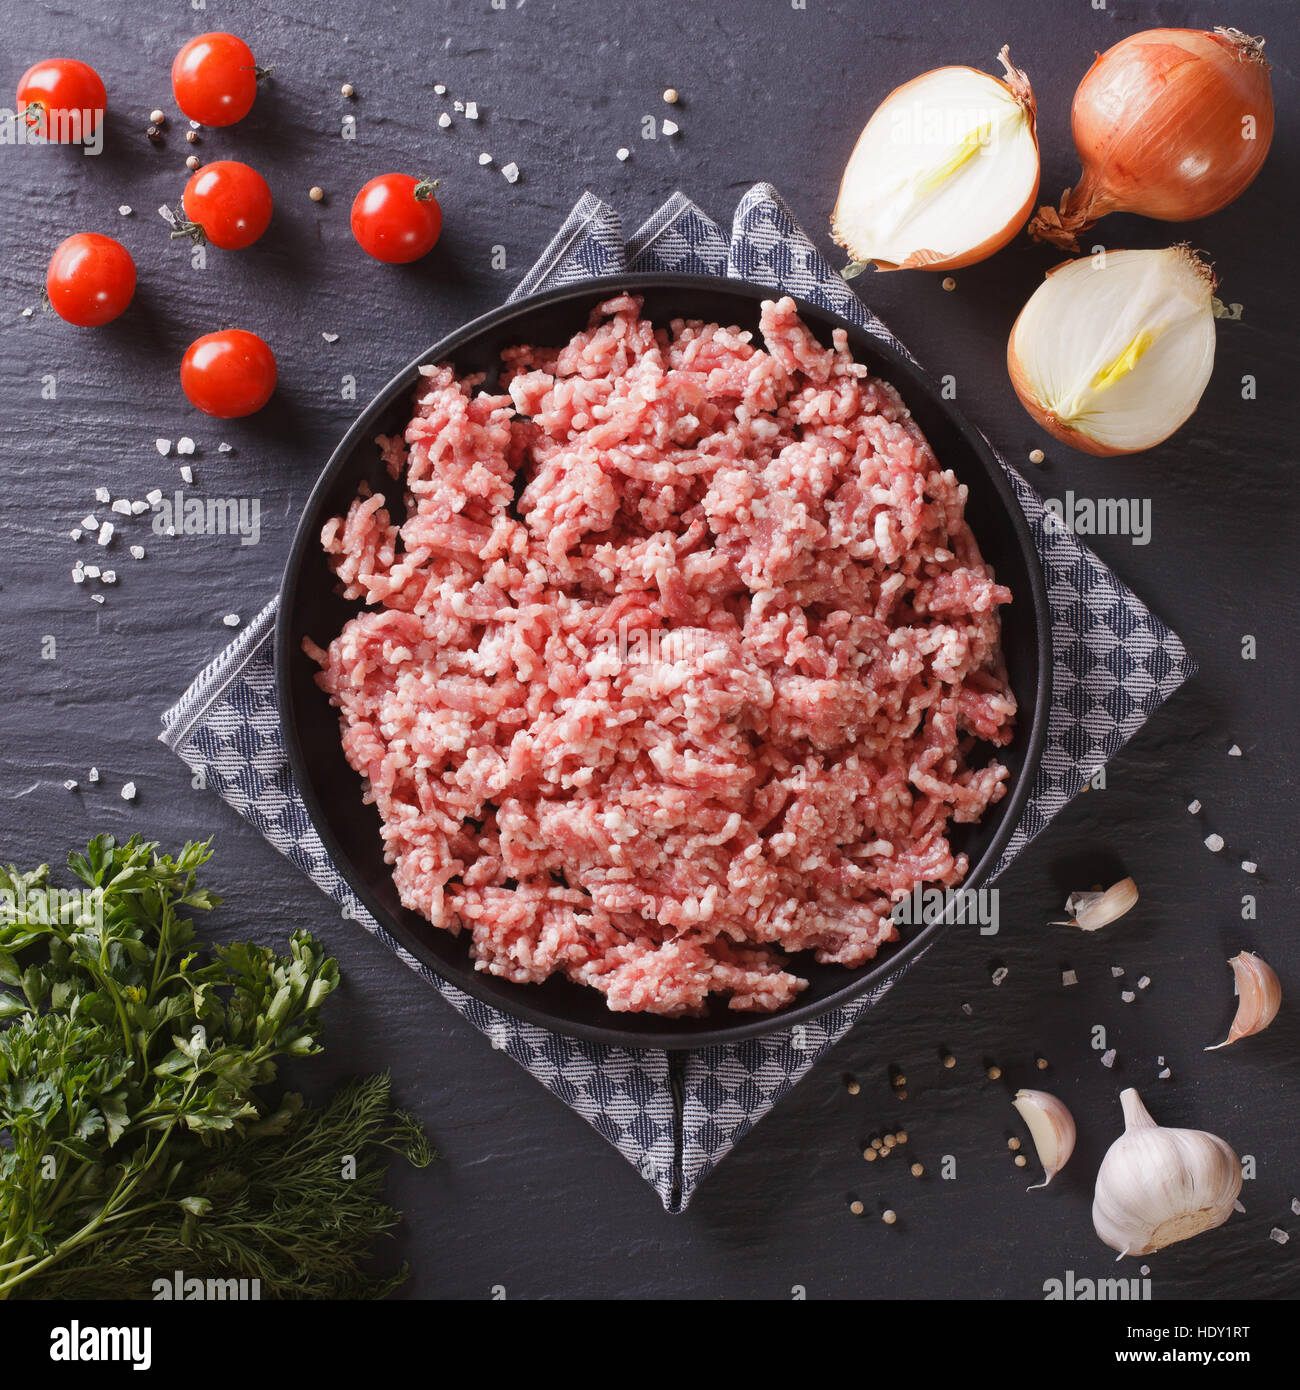 Raw minced pork in a plate and fresh vegetables on a table close-up. top view Stock Photo